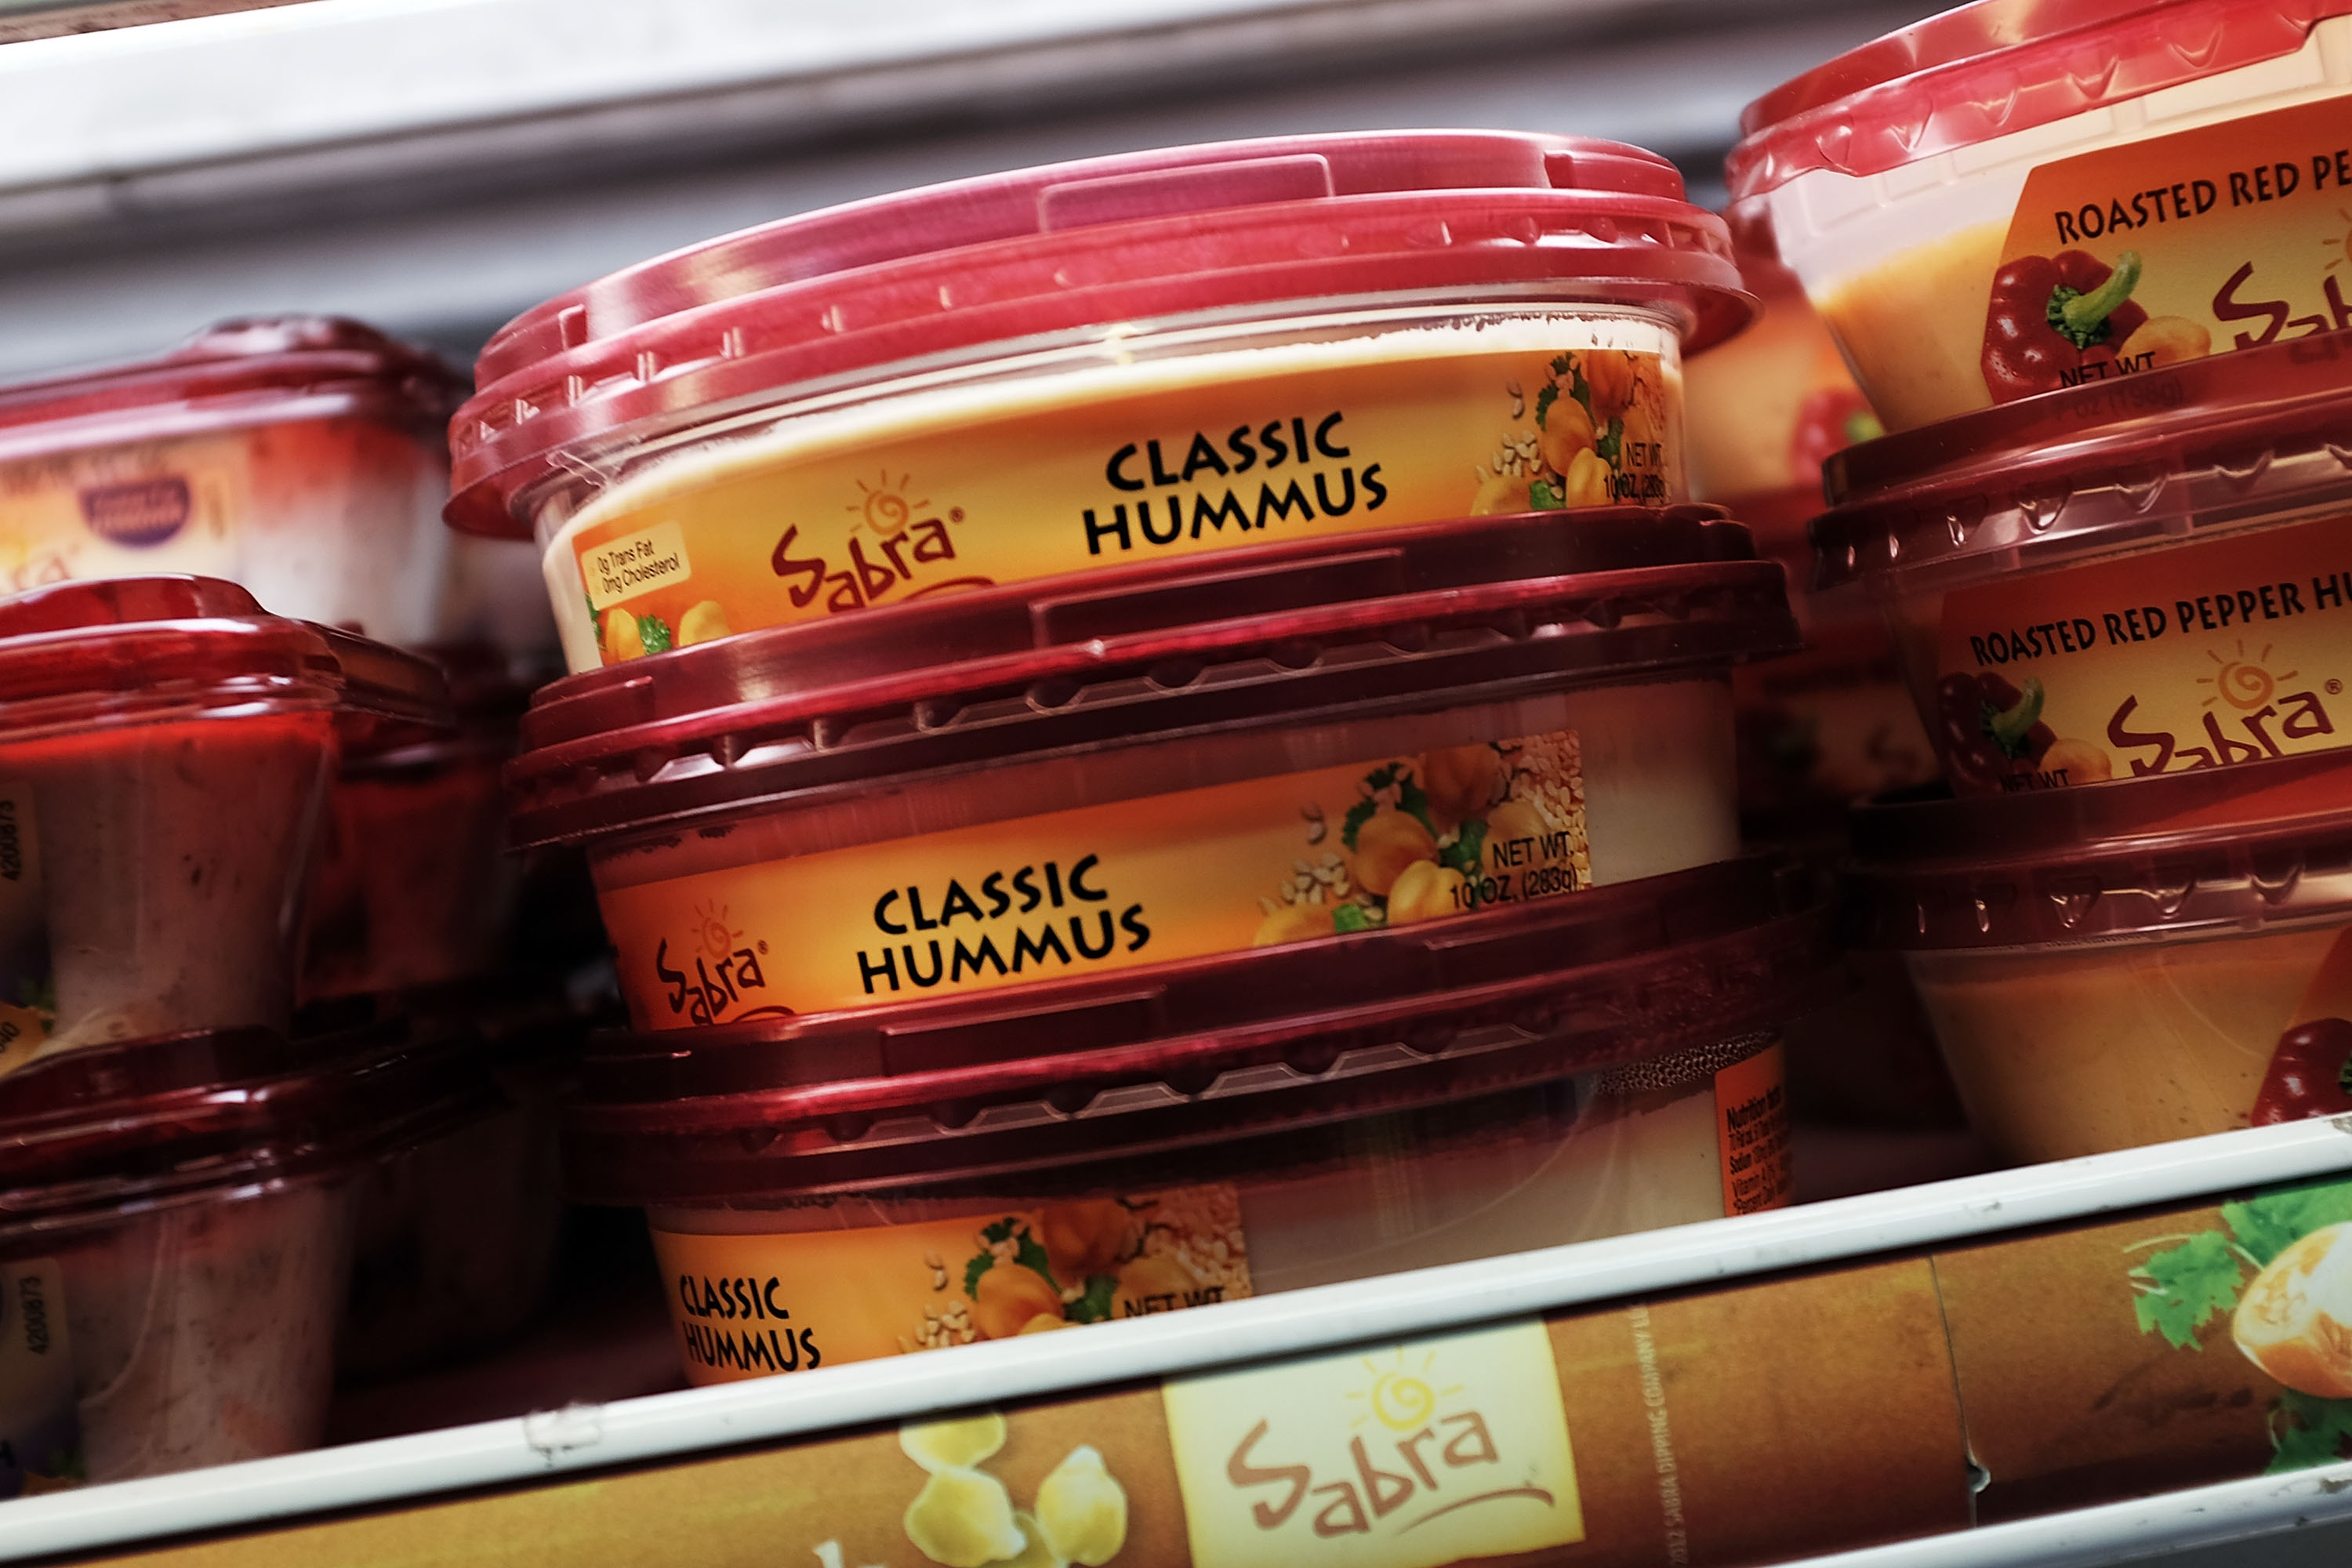 Sabra Hummus Just Recalled Nearly Every One Of Their Products